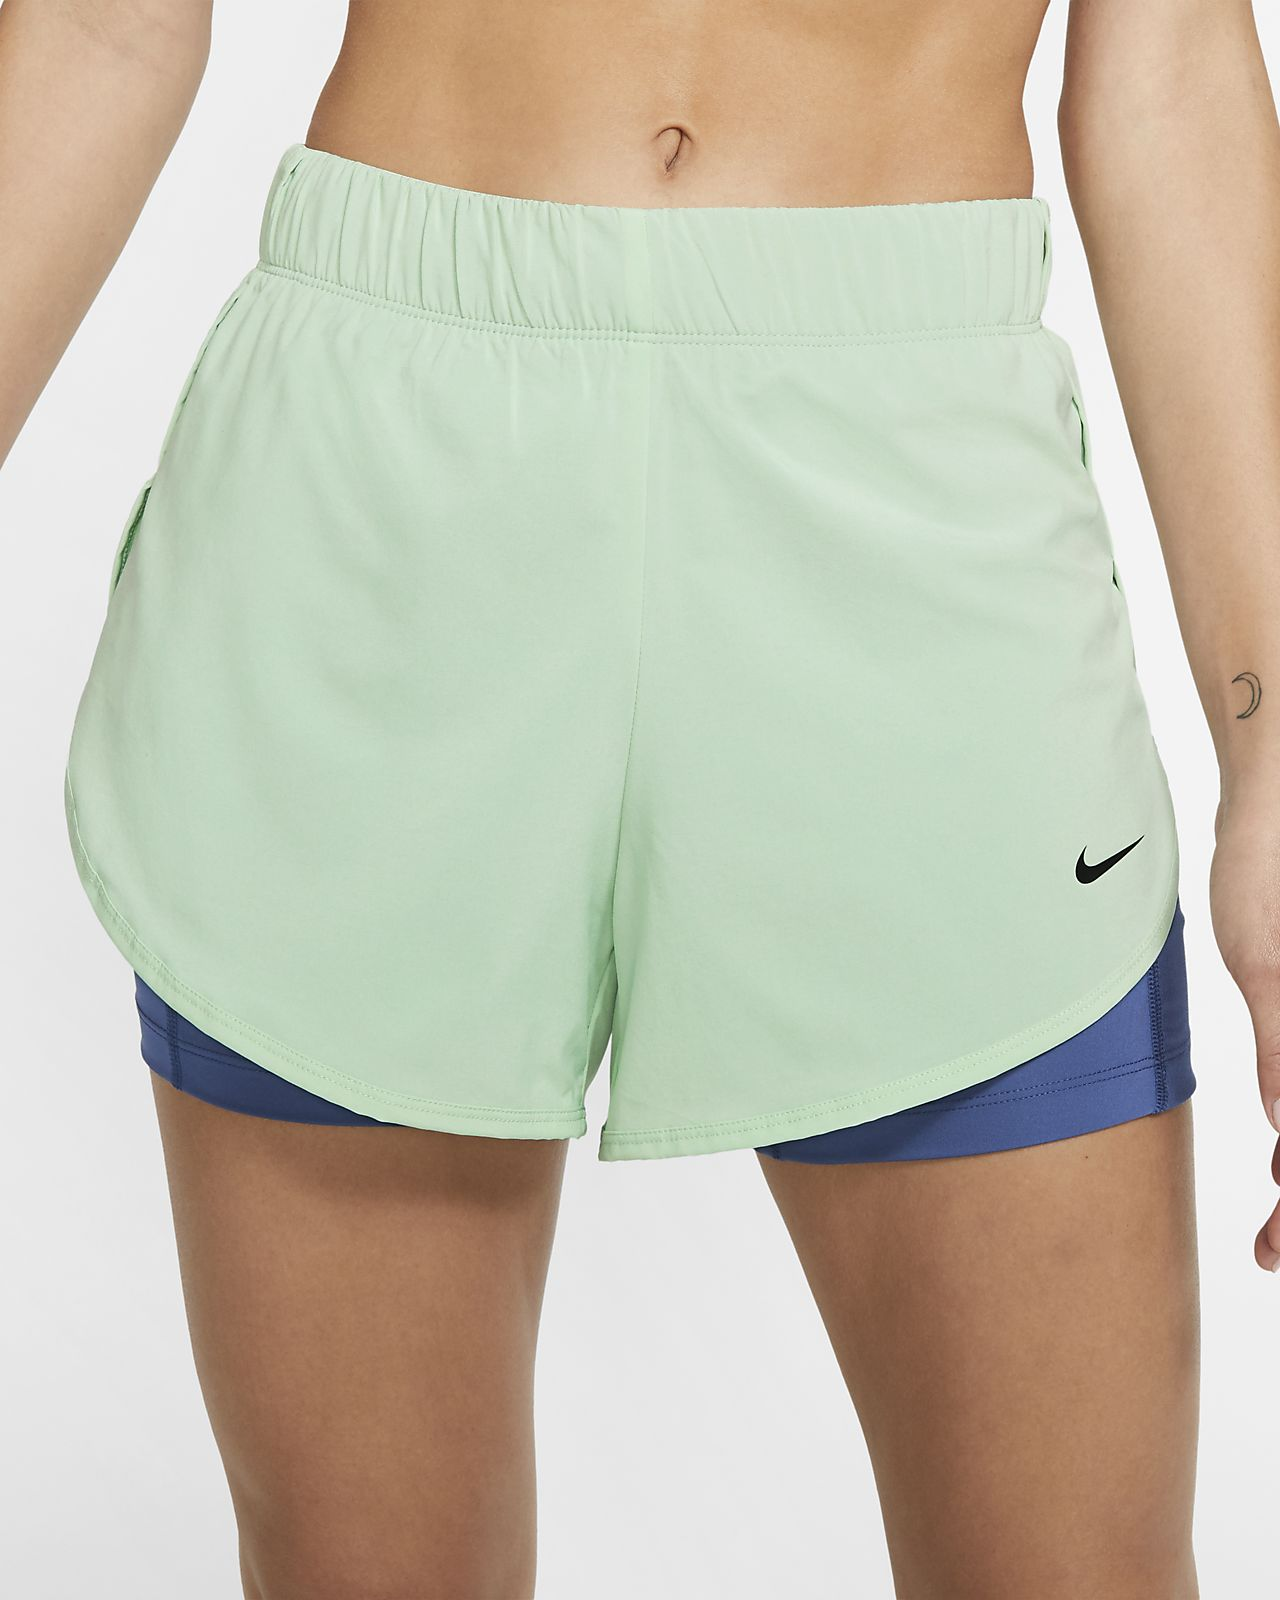 5af602797c Nike Flex Women's 2-in-1 Training Shorts. Nike.com ZA